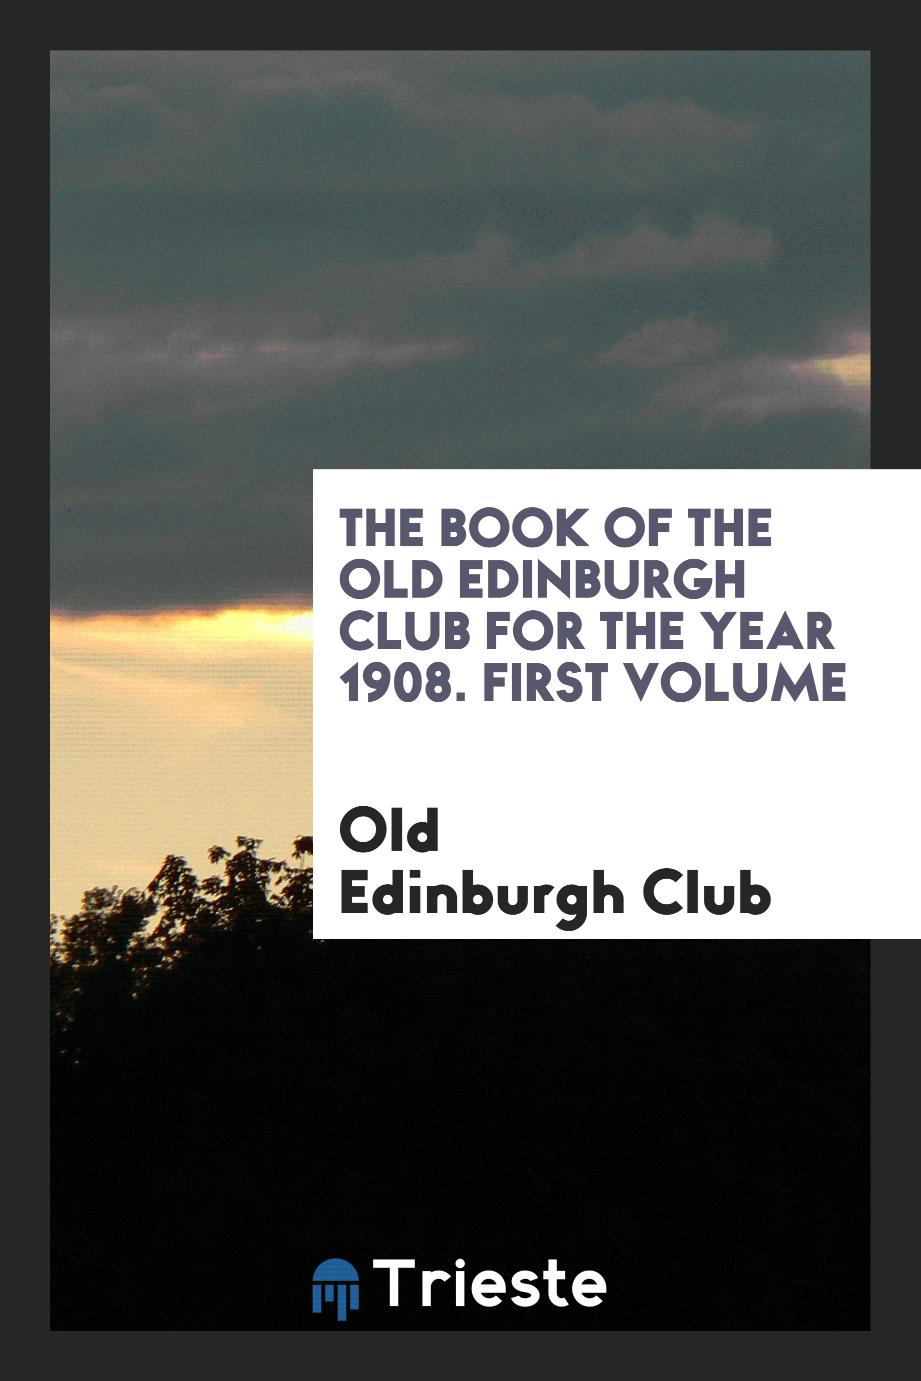 The Book of the Old Edinburgh Club for the Year 1908. First Volume